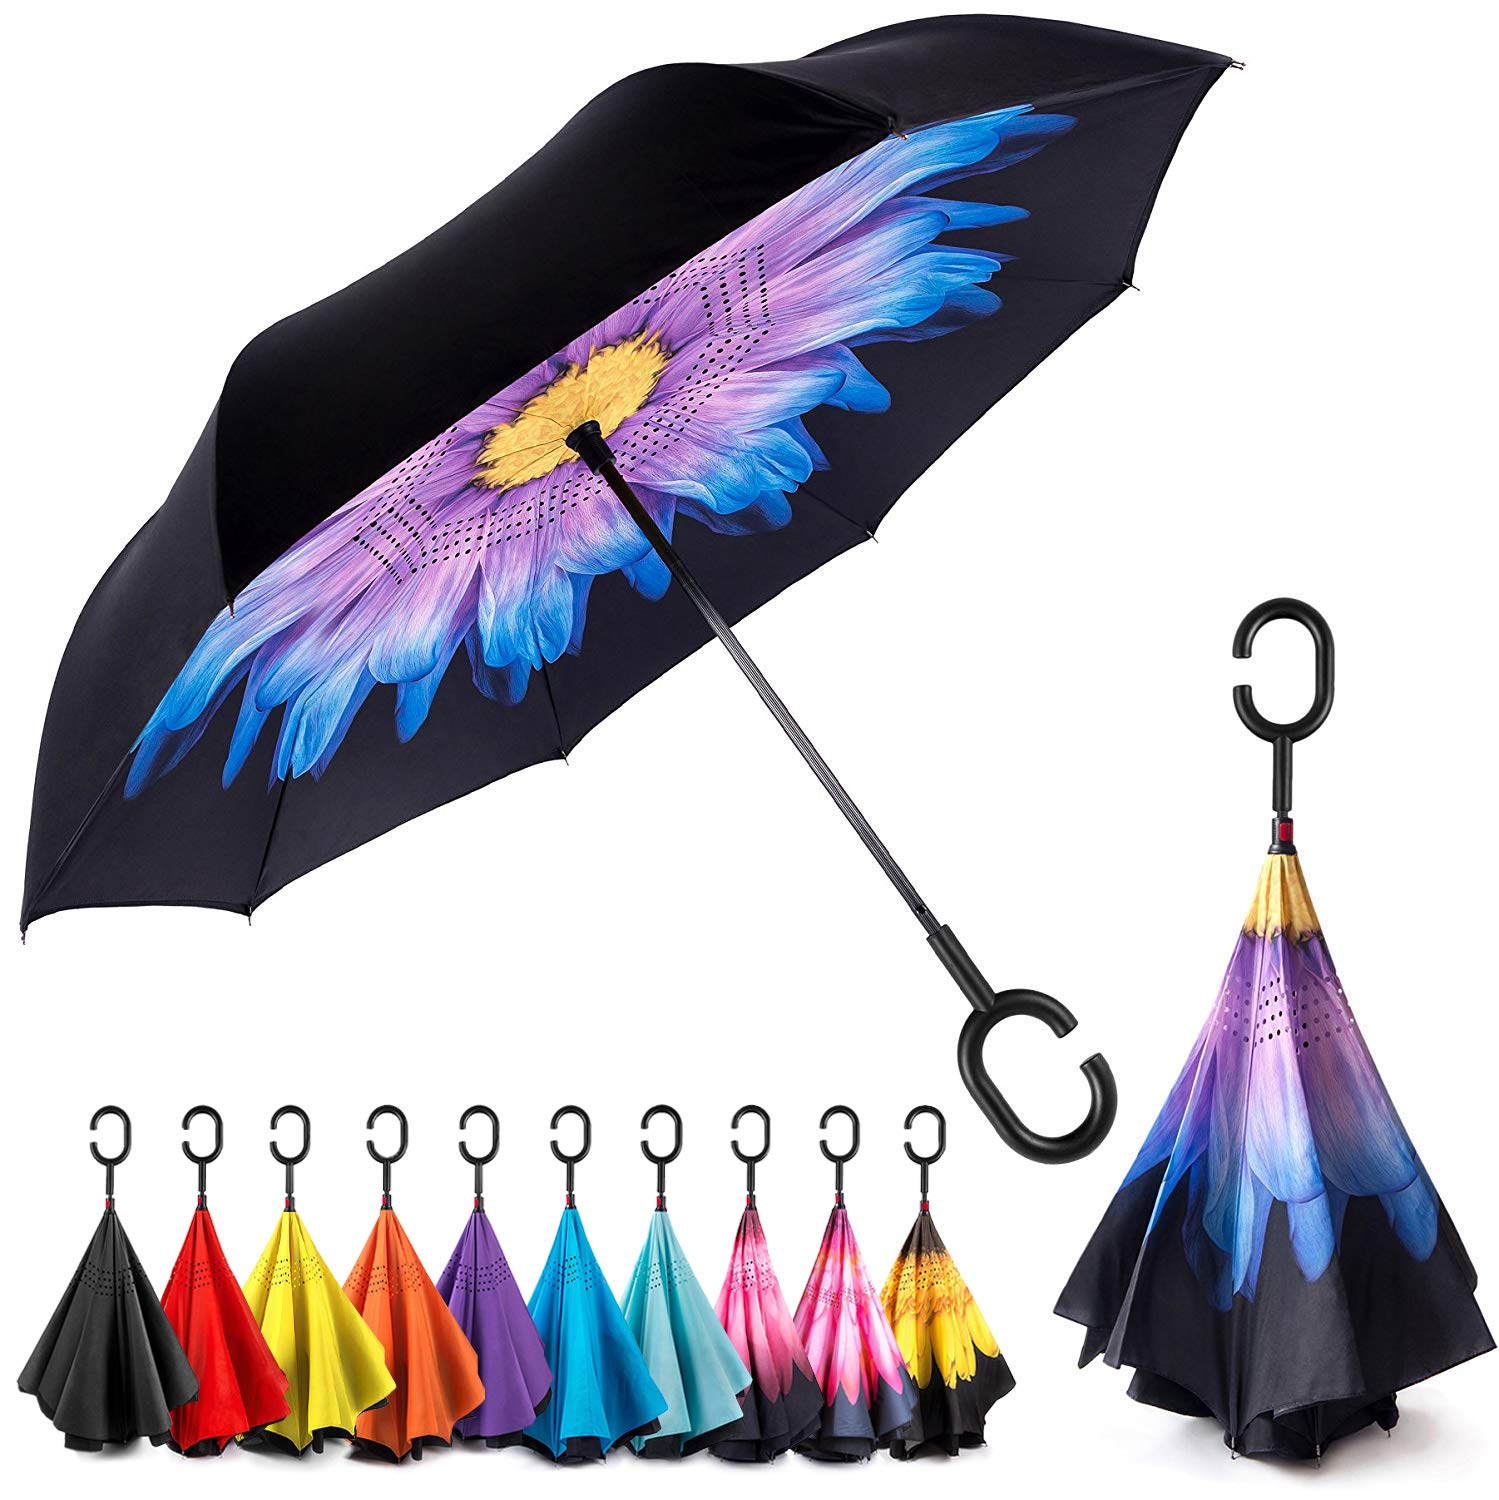 EEZ-Y Reverse Inverted Windproof Umbrella - Upside Down Umbrellas with C-Shaped Handle for Women and Men - Double Layer Inside Out Folding Umbrella by EEZ-Y